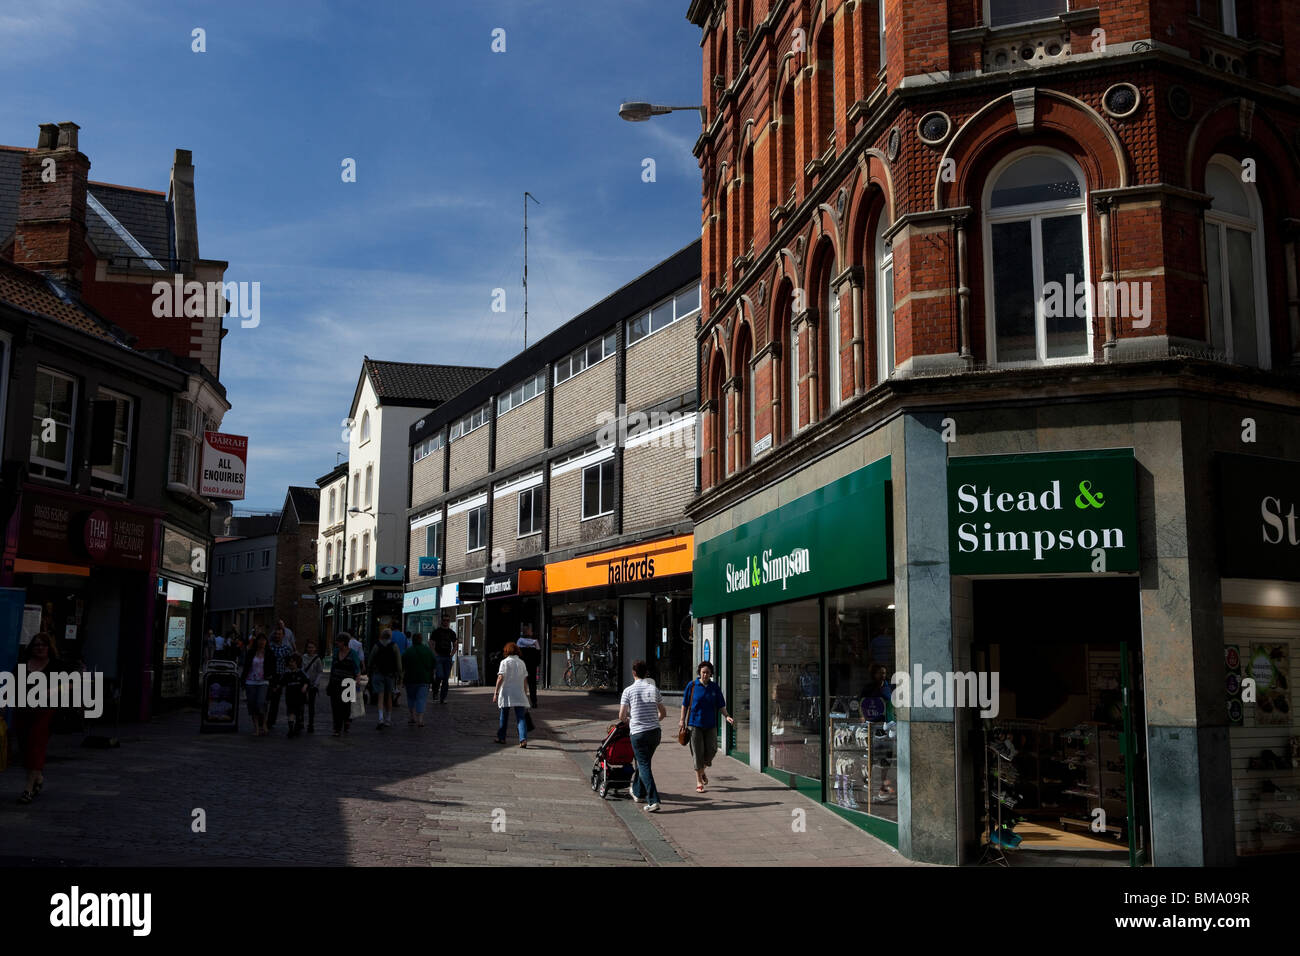 Norwich city centre, London Street leading towards the Castle Mall Shopping center - Stock Image